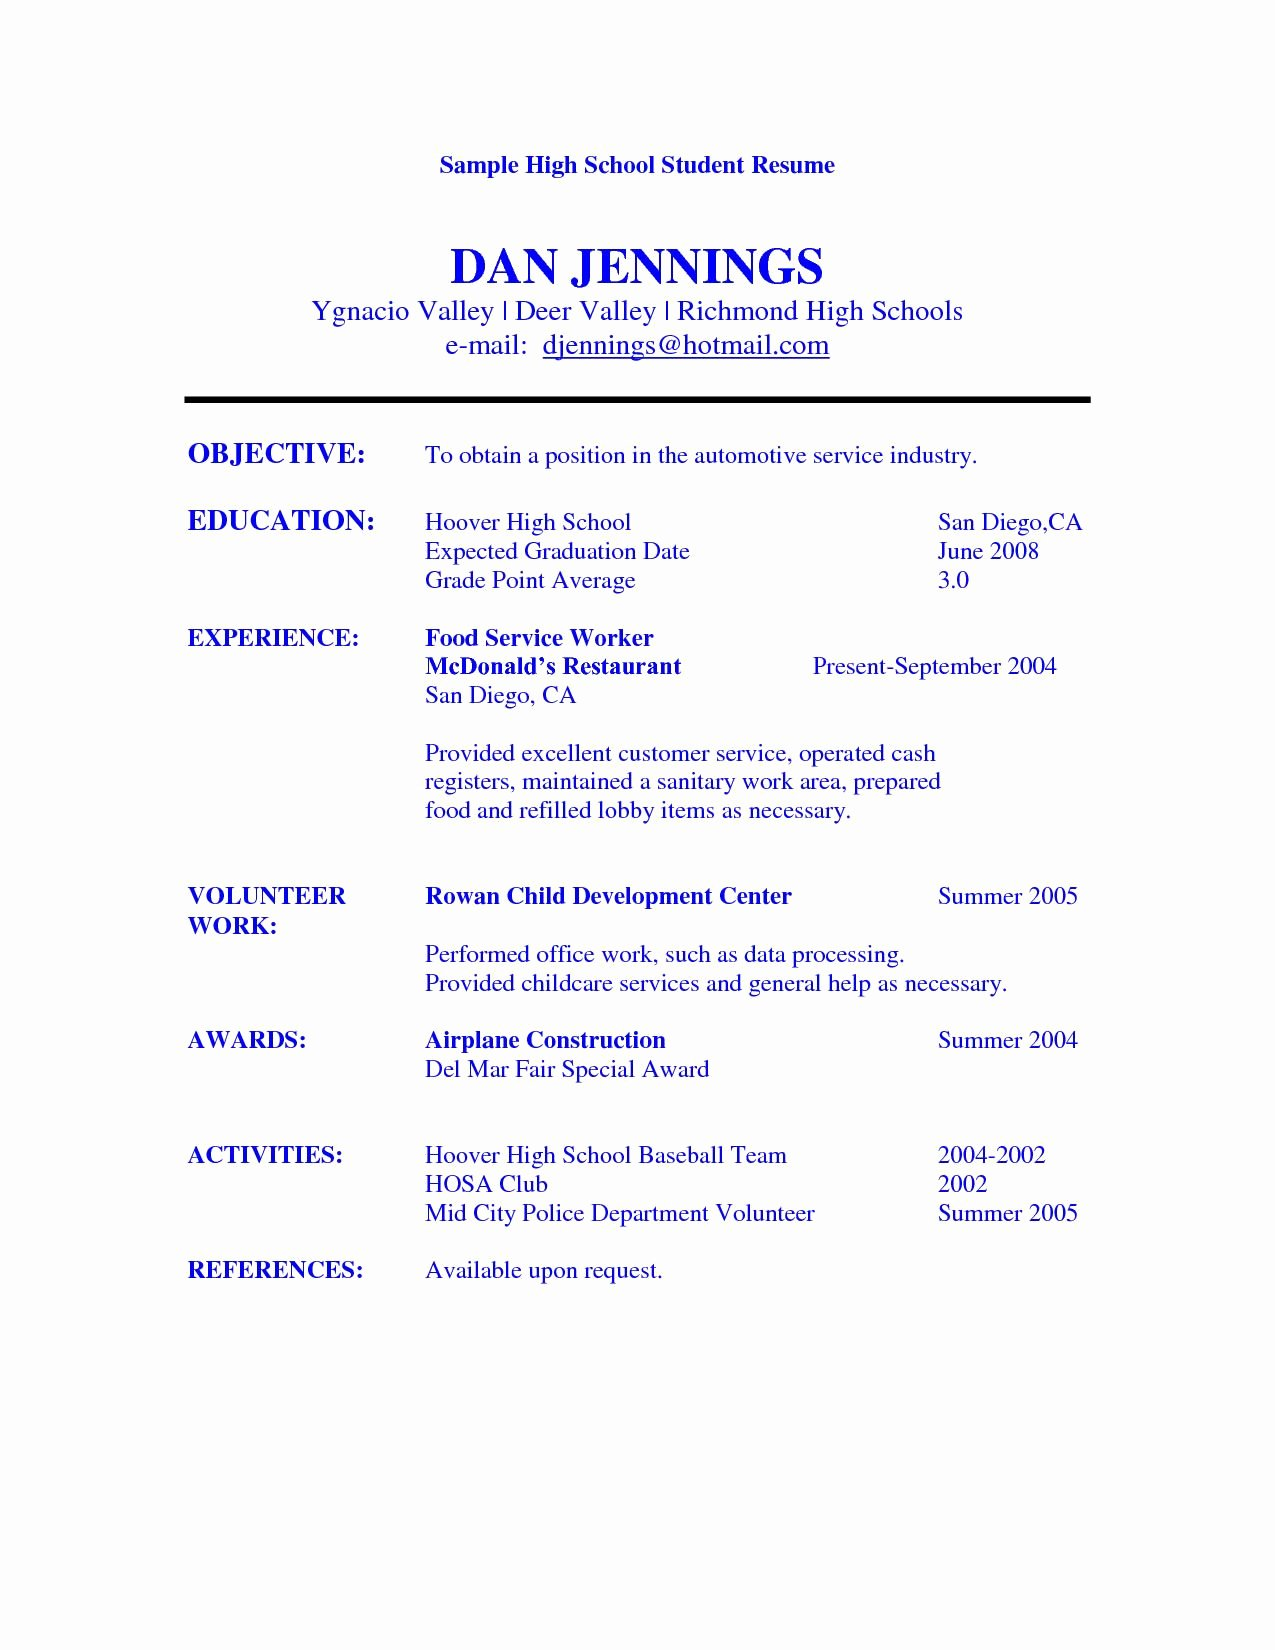 Resumes for High School Students New High School Student Resume Objective Examples